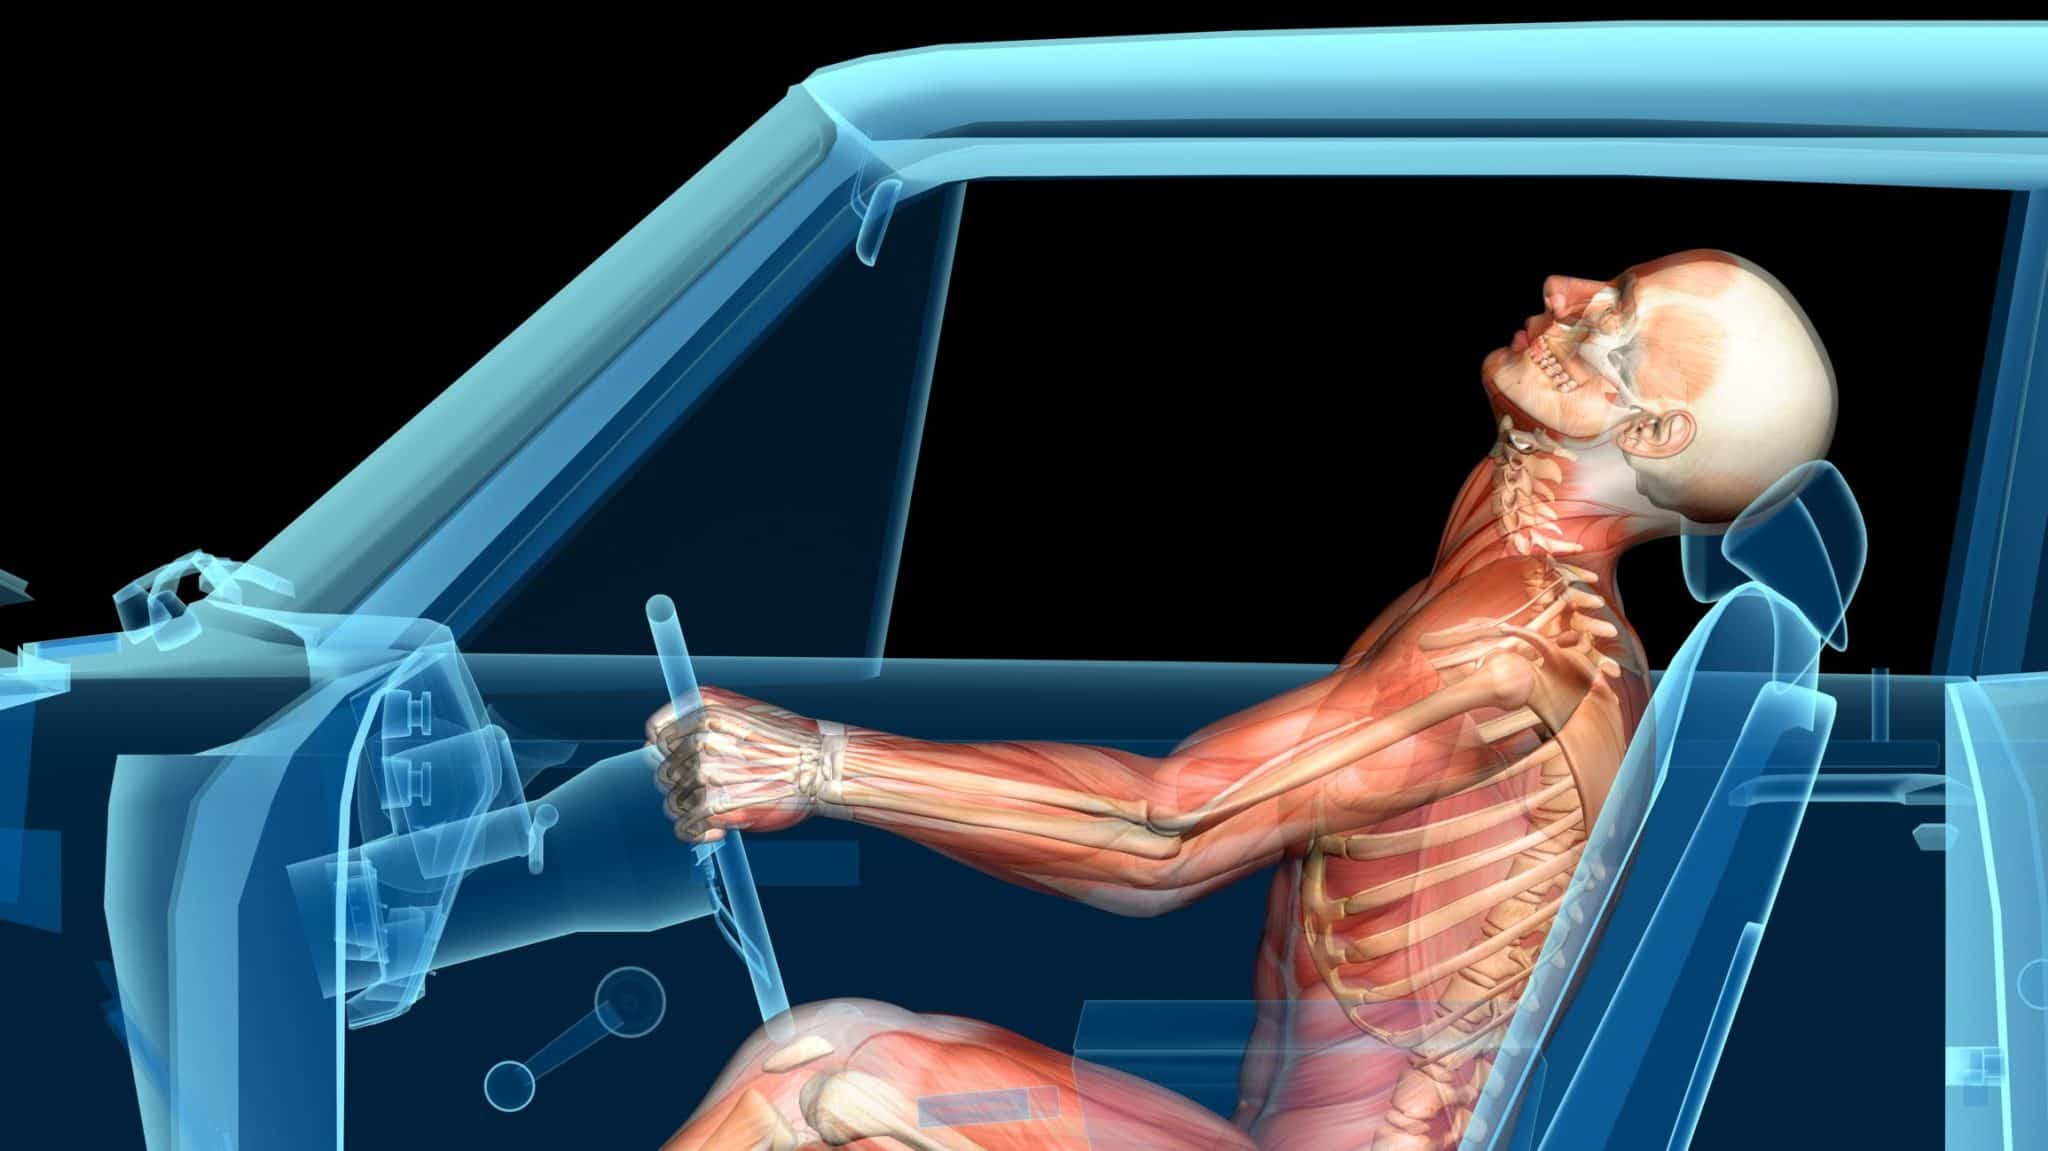 Tebby Chiropractic Clinic Helps Individuals With Whiplash From Automobile Accidents